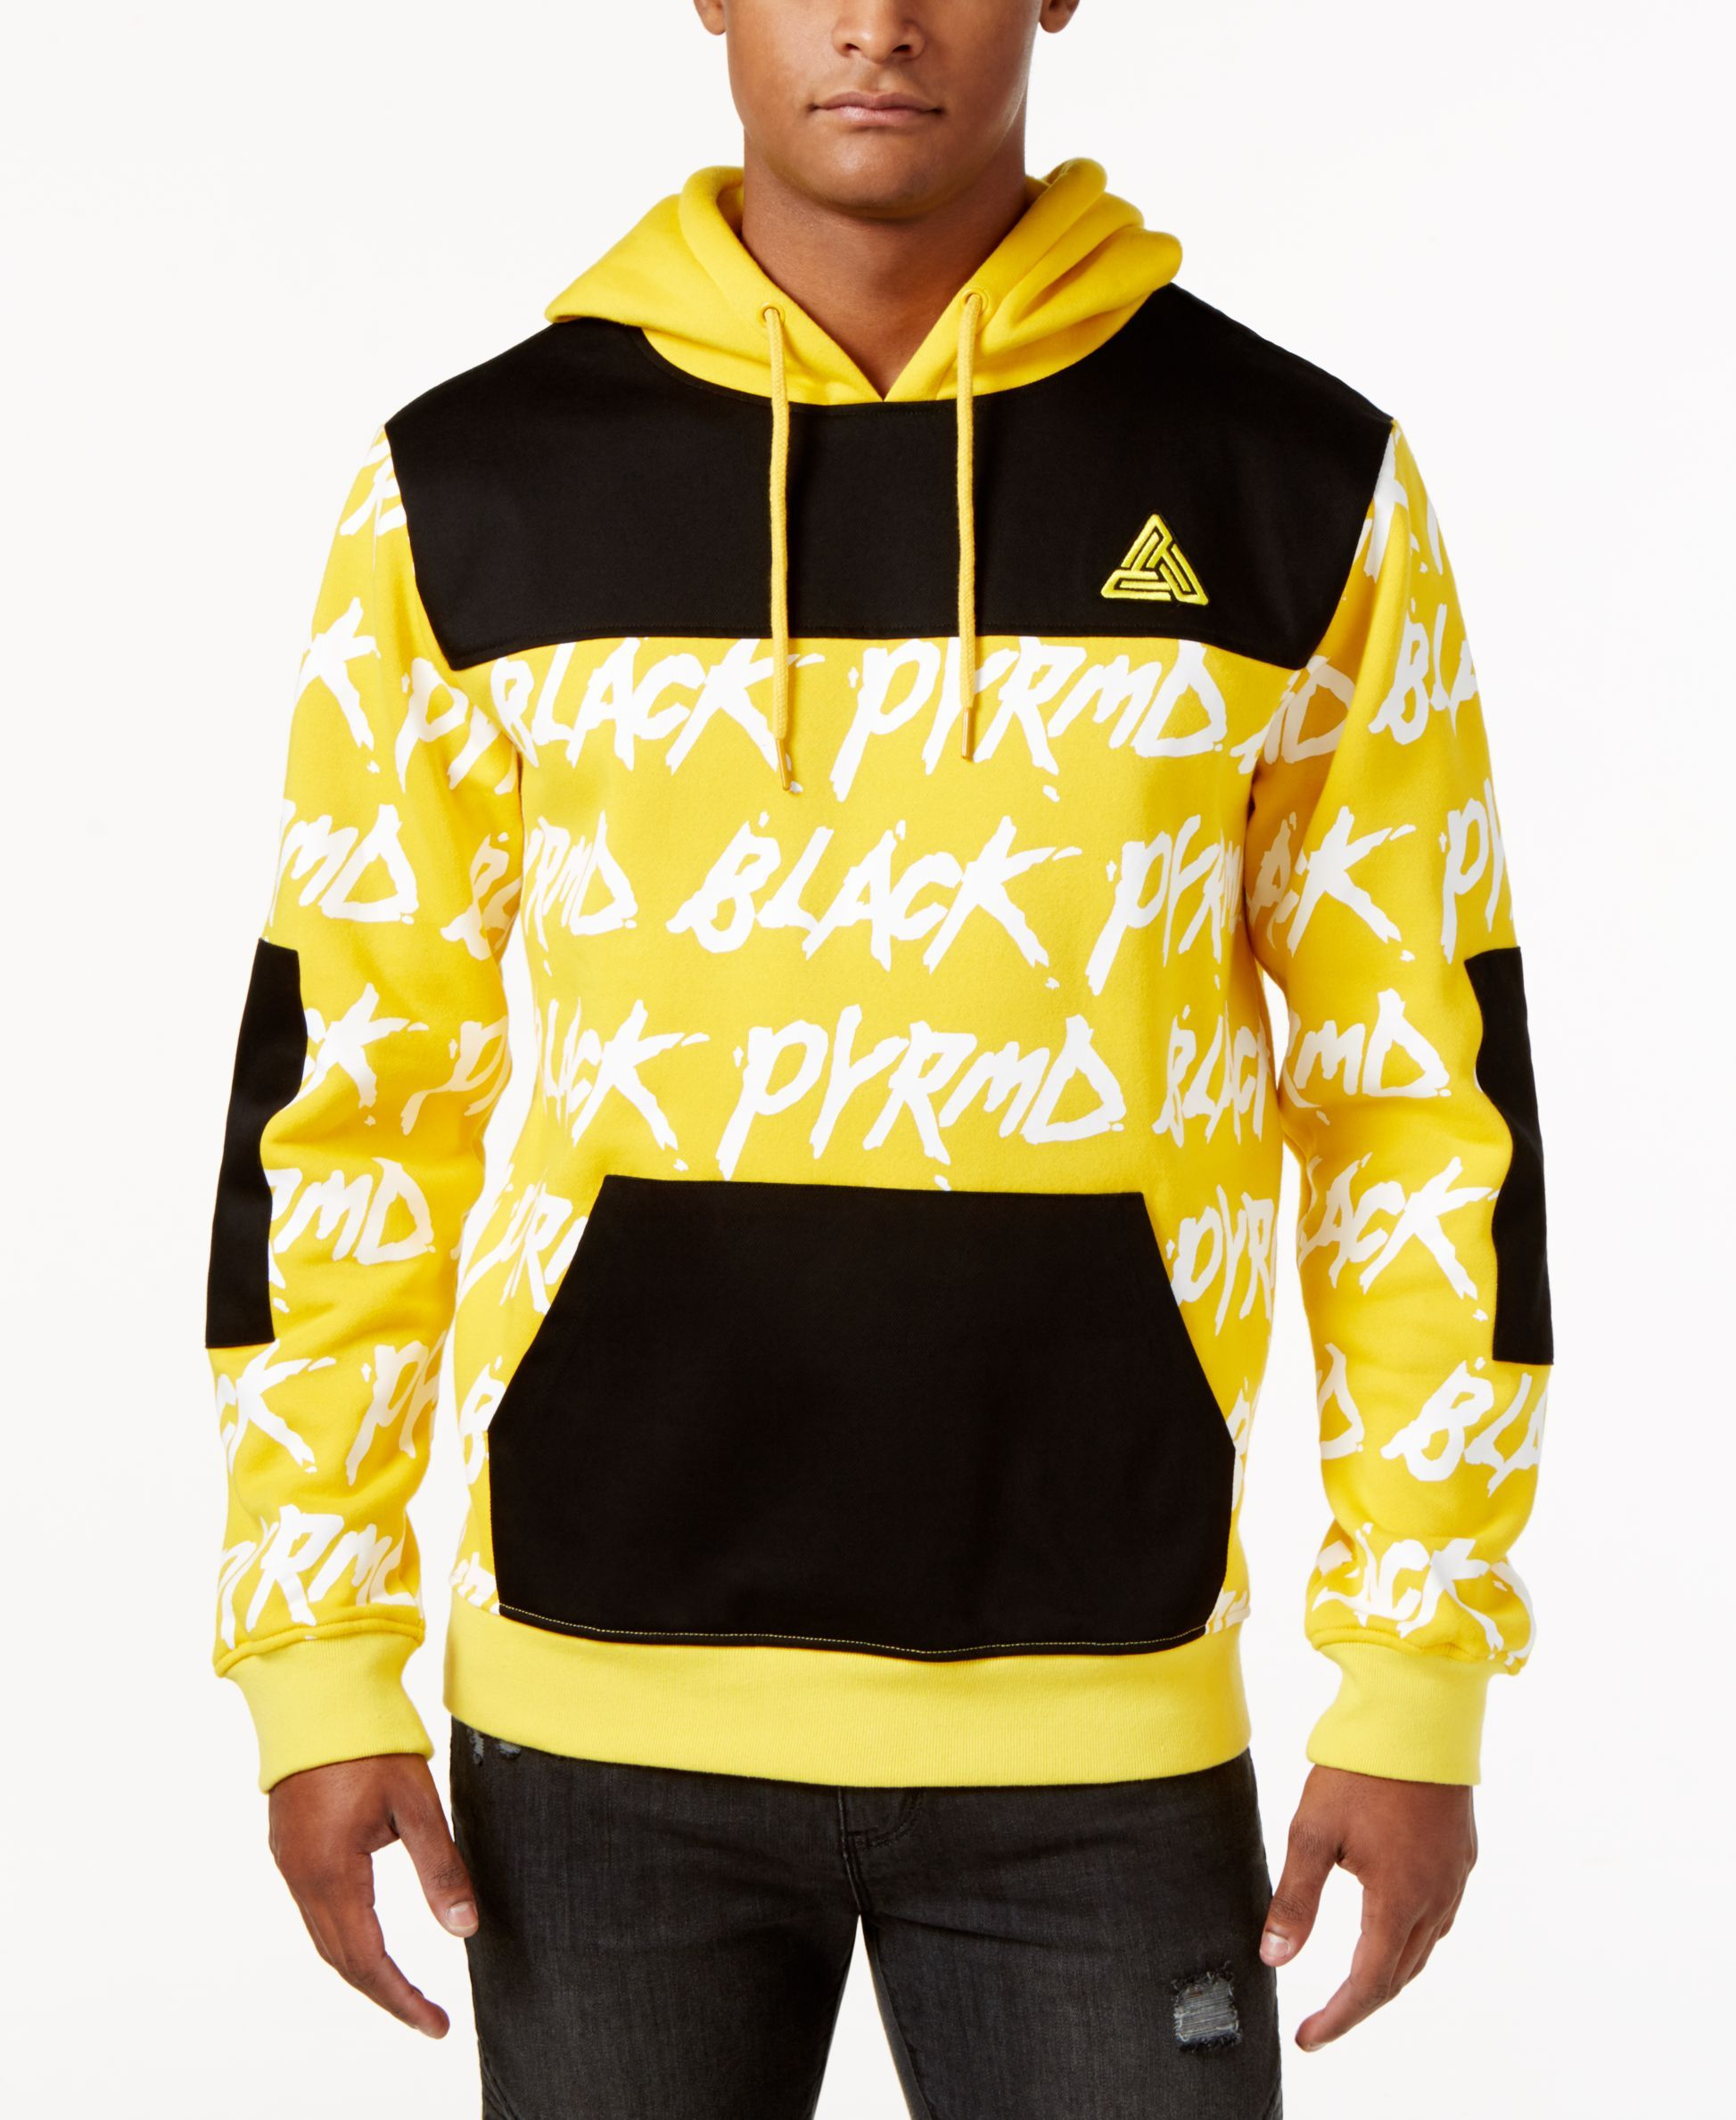 05ed9436 Black Pyramid Men's Text Hoodie | Products | Mens sweatshirts ...